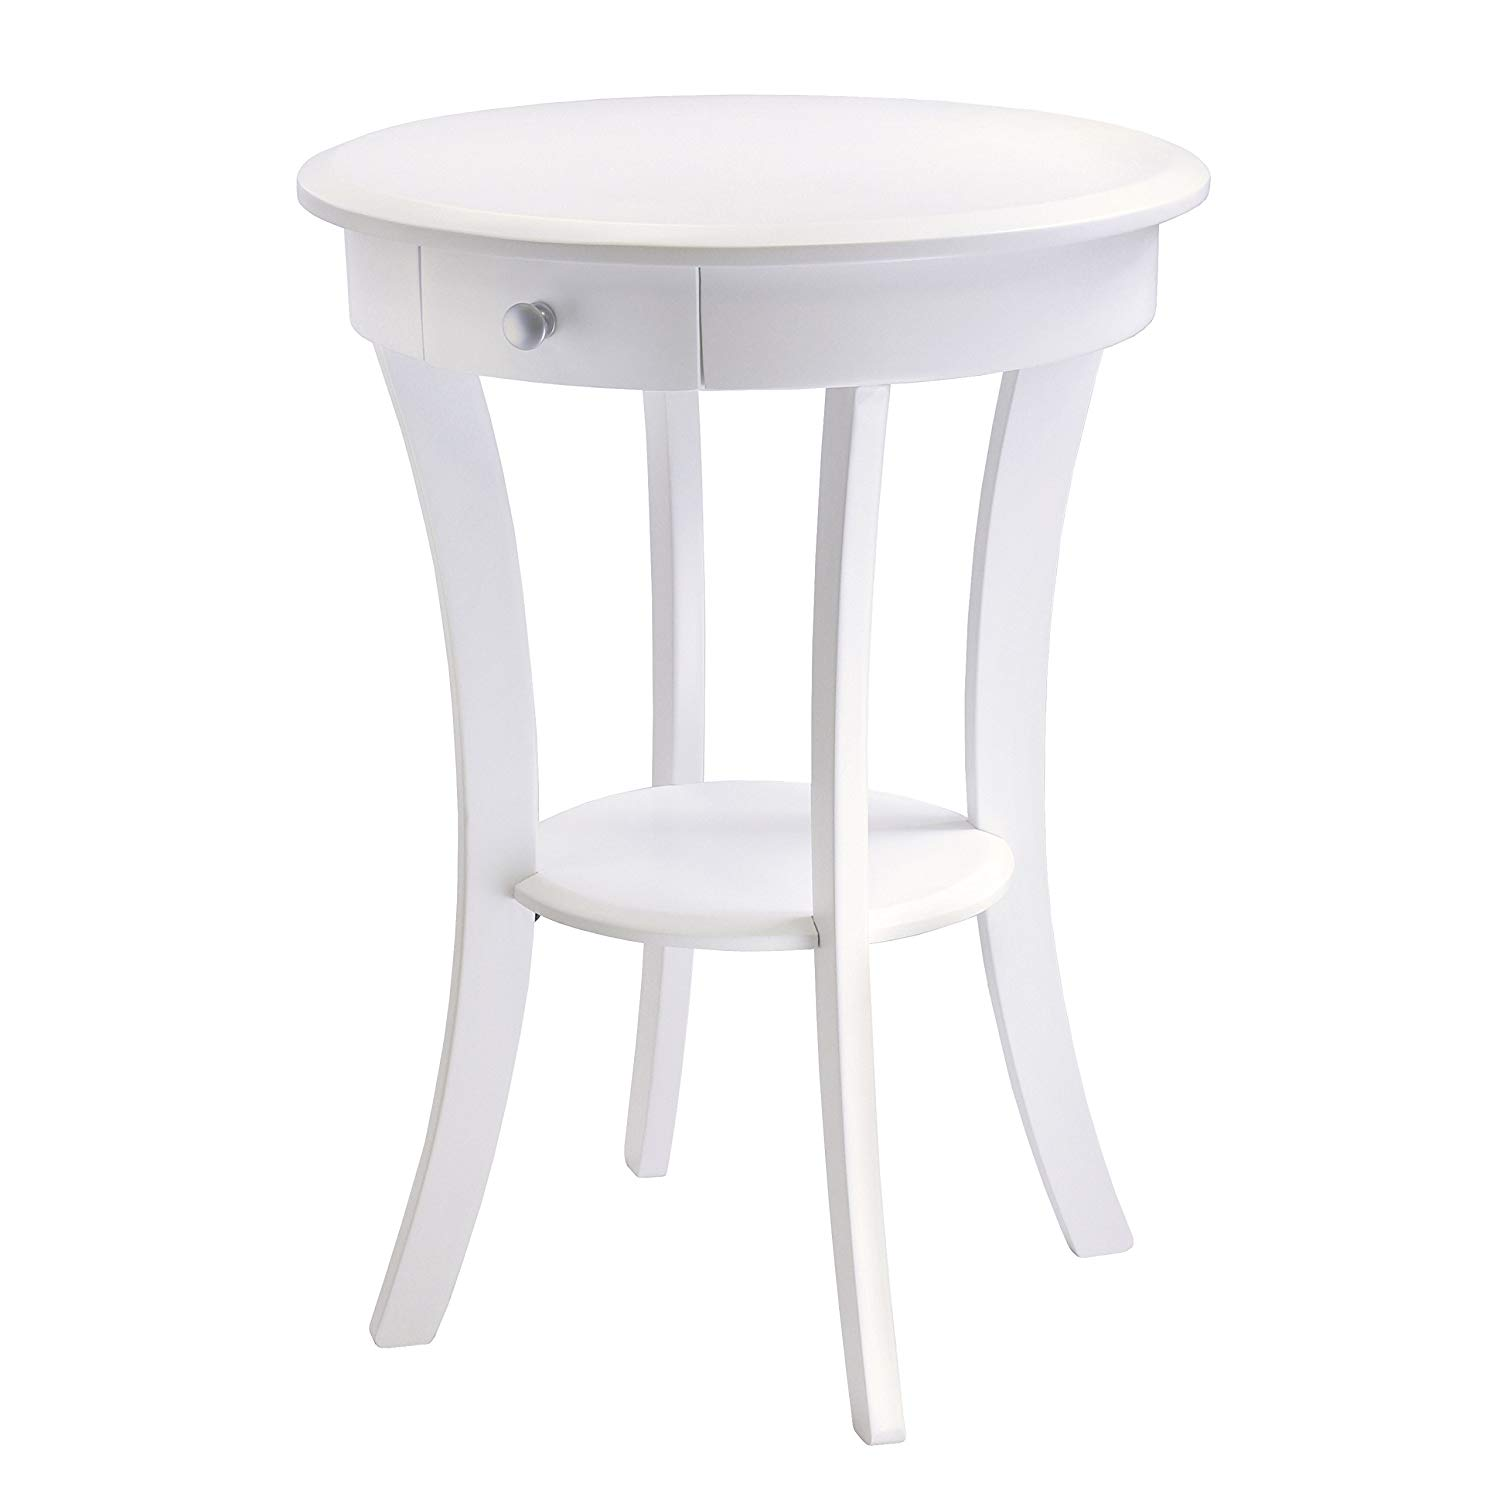 review winsome wood sasha accent table with drawer curved legs white wct morris end baskets espresso piece pub set macys steve madden cat litter tray lid rosewood tall wrought